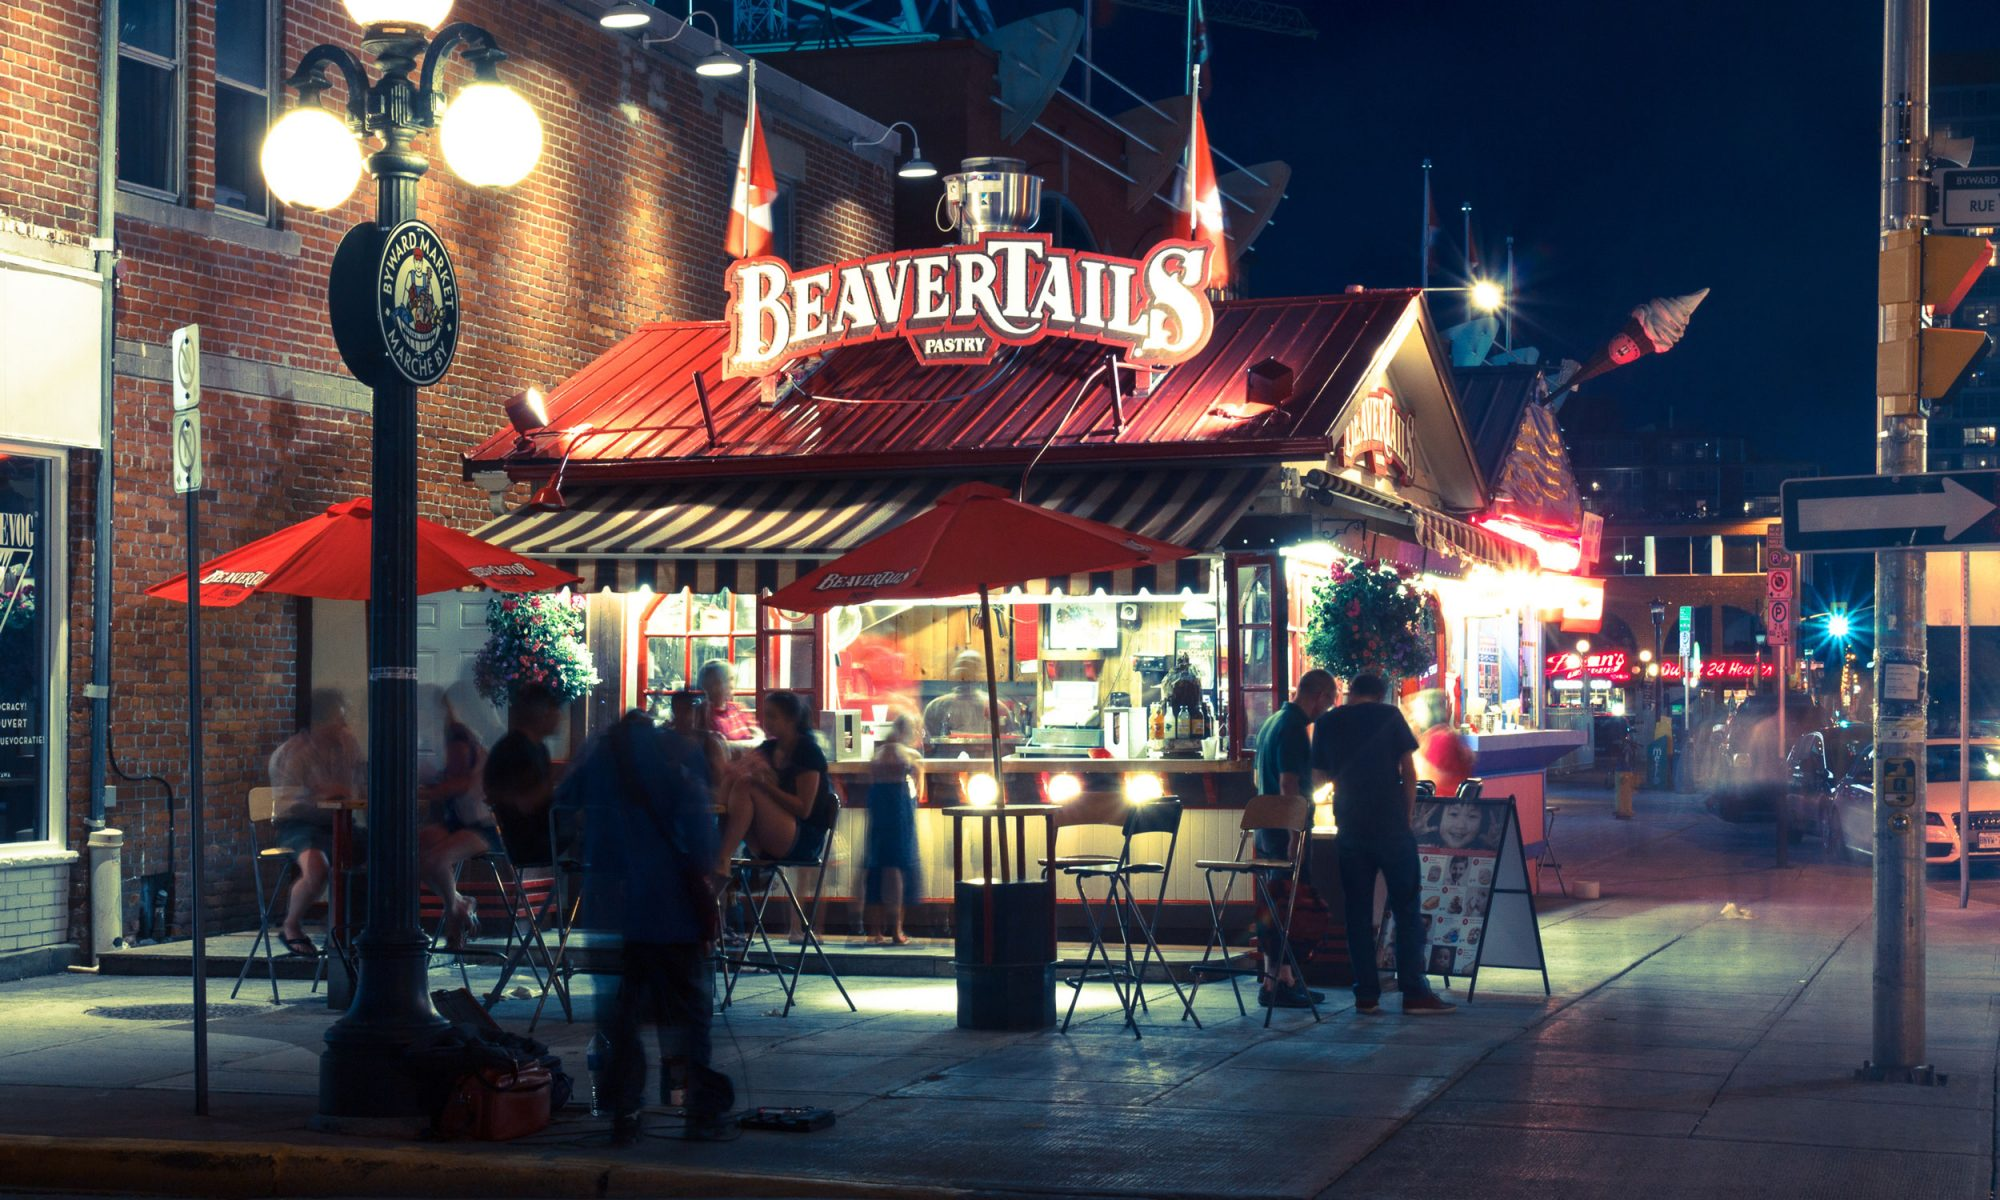 EC: BeaverTails Are the Canadian Pastries Taking Over the World